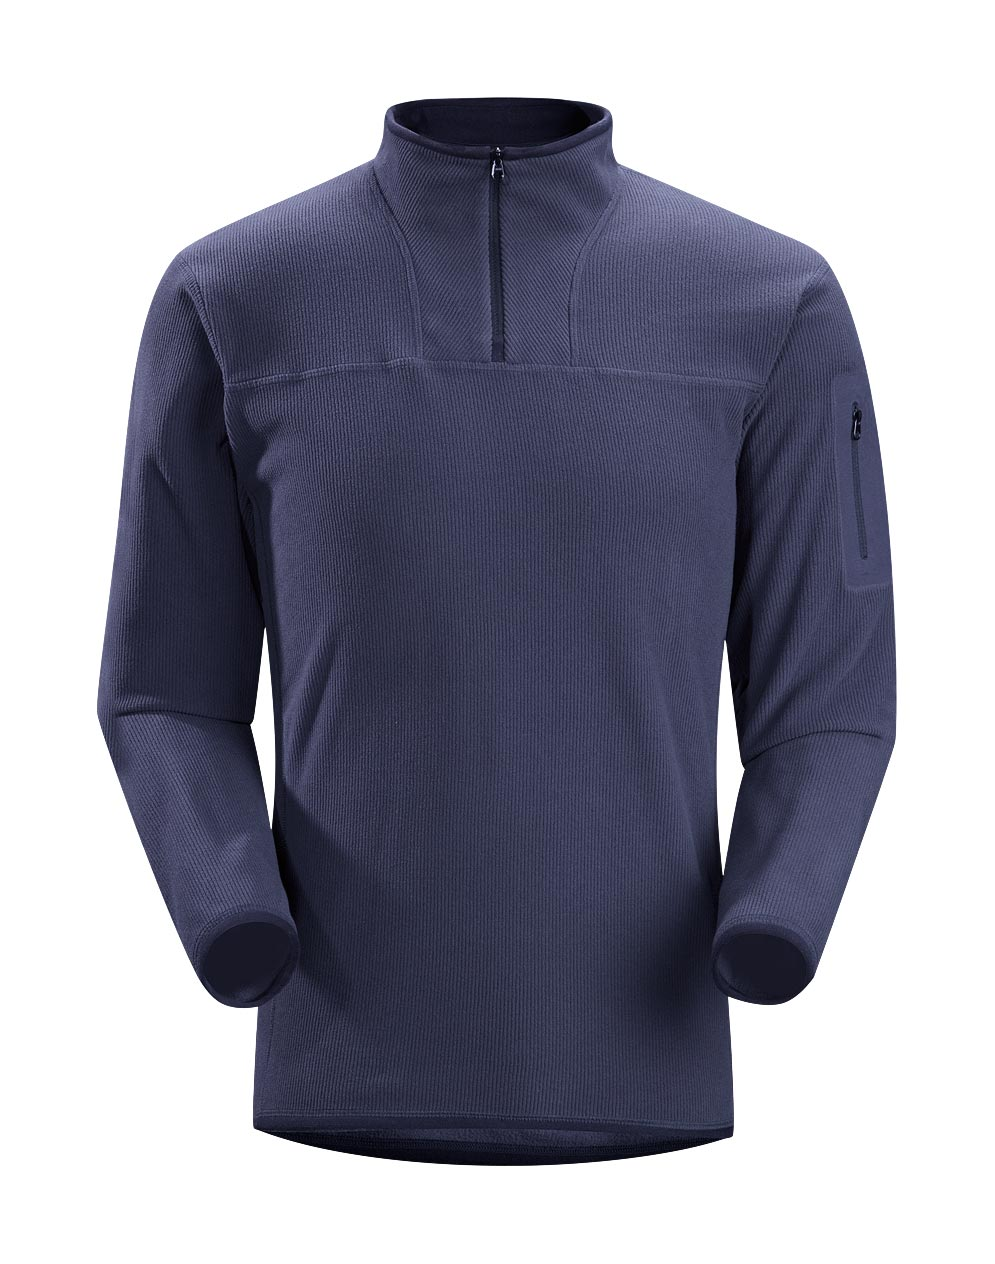 Arcteryx Blue Kyanite Caliber Zip Neck